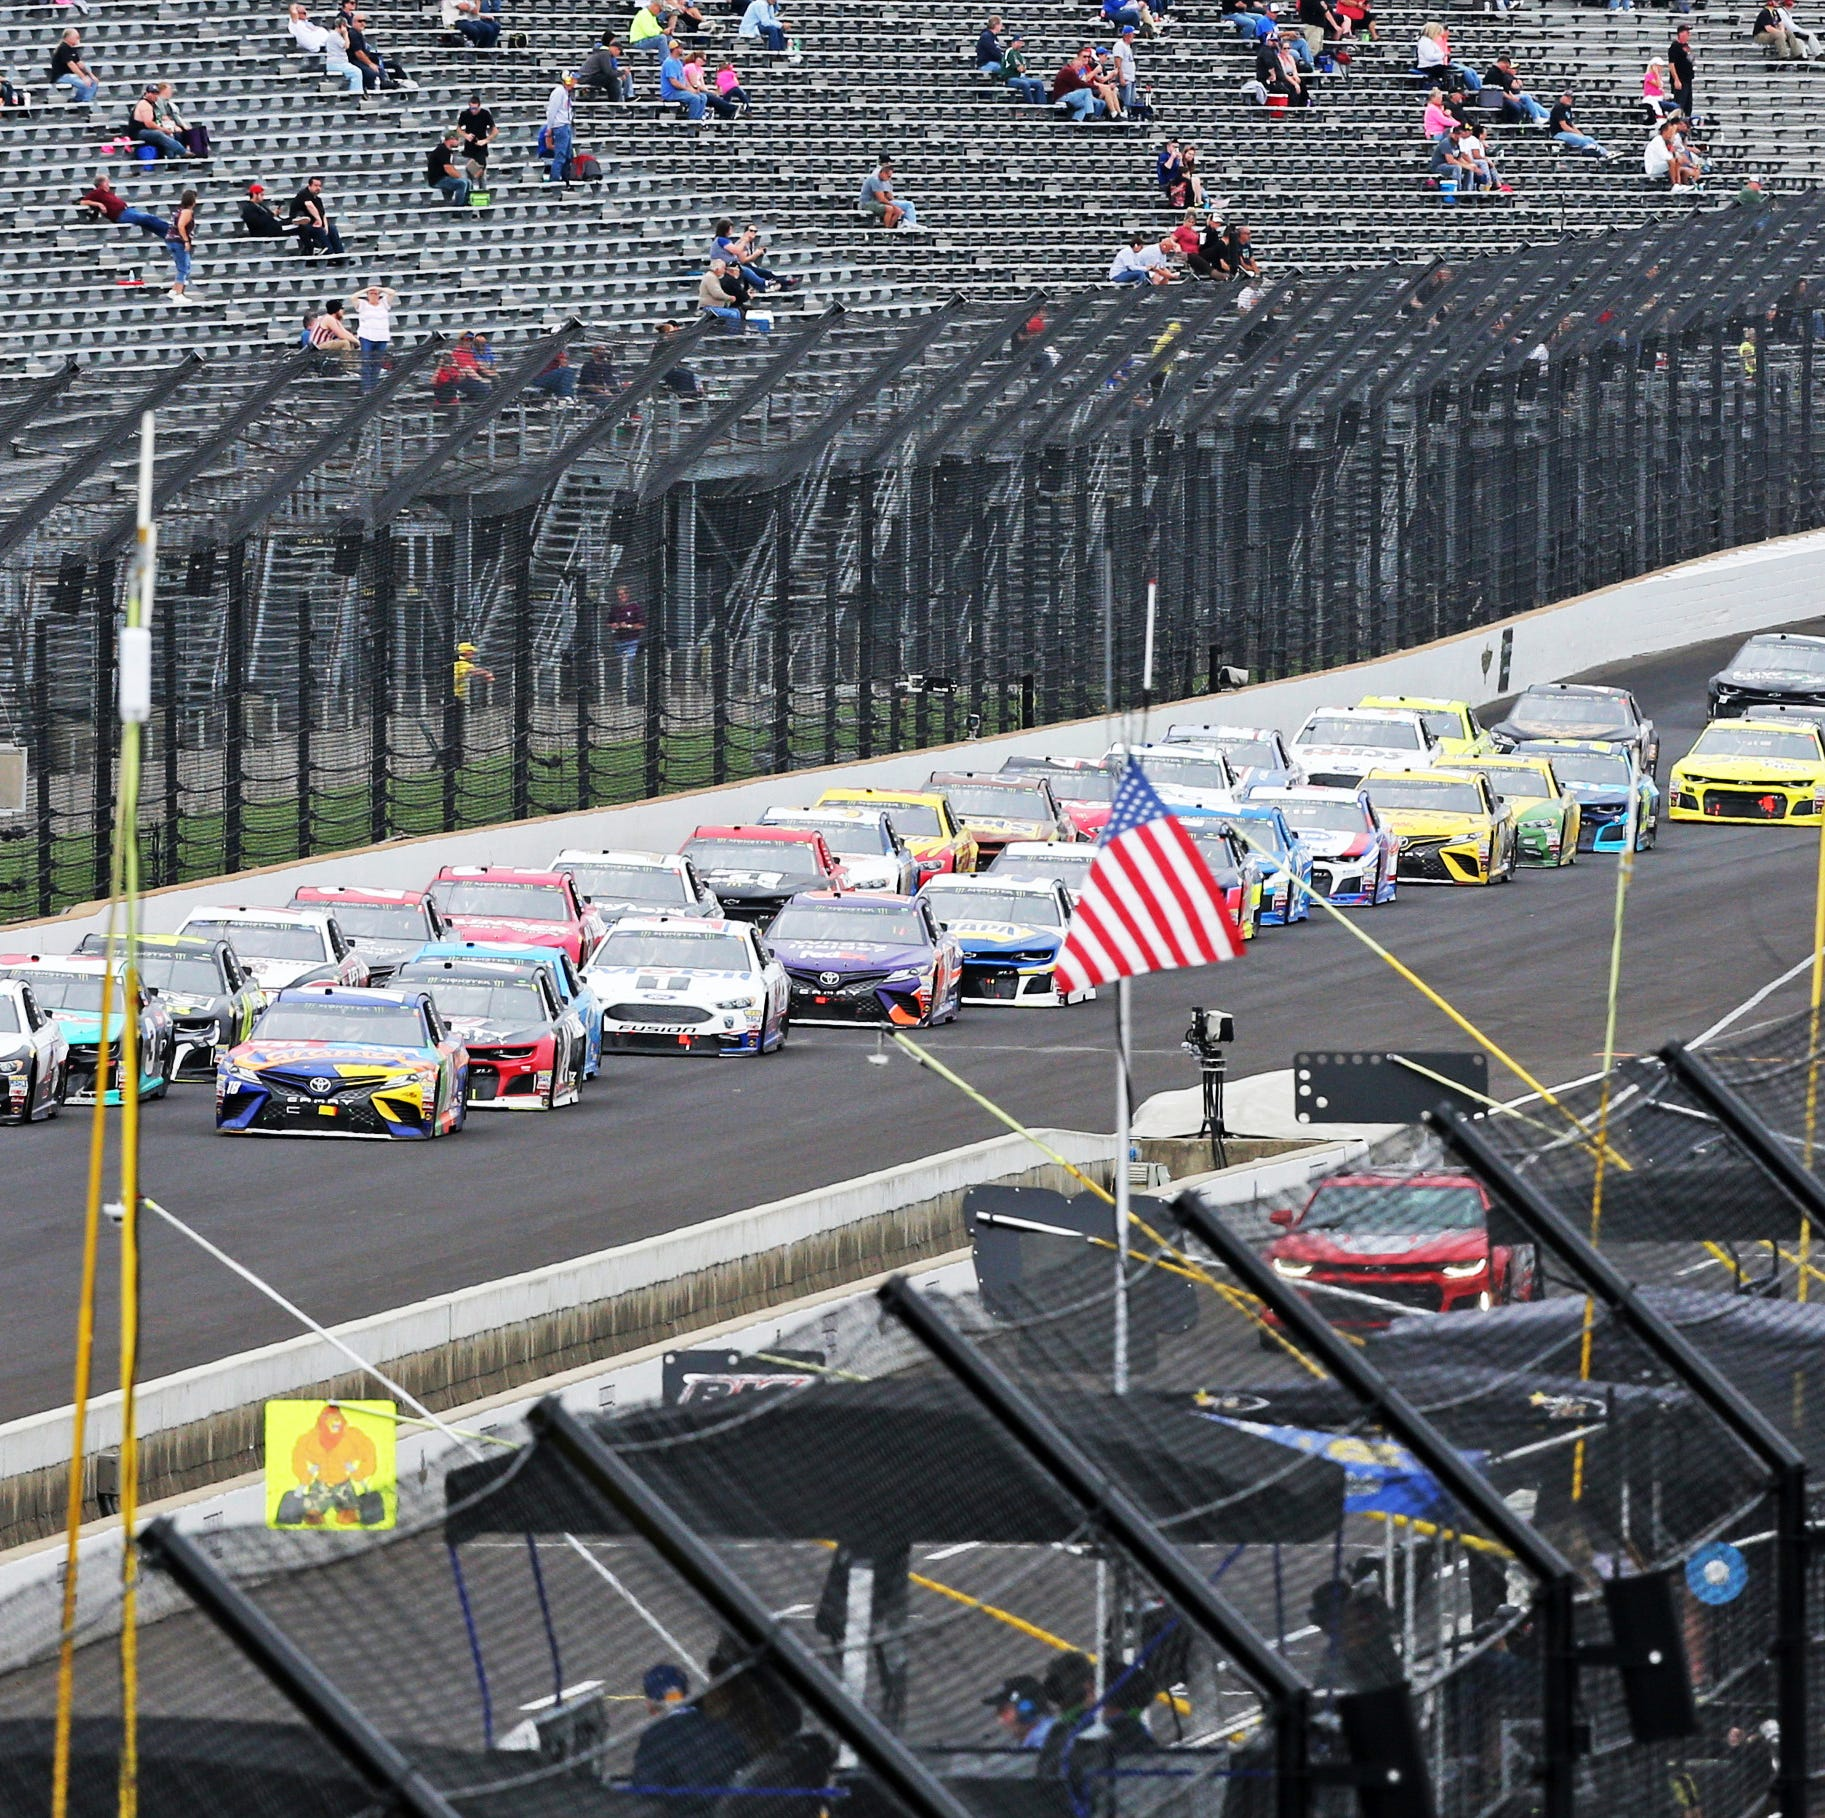 Source: The Brickyard 400 is on the move ... again